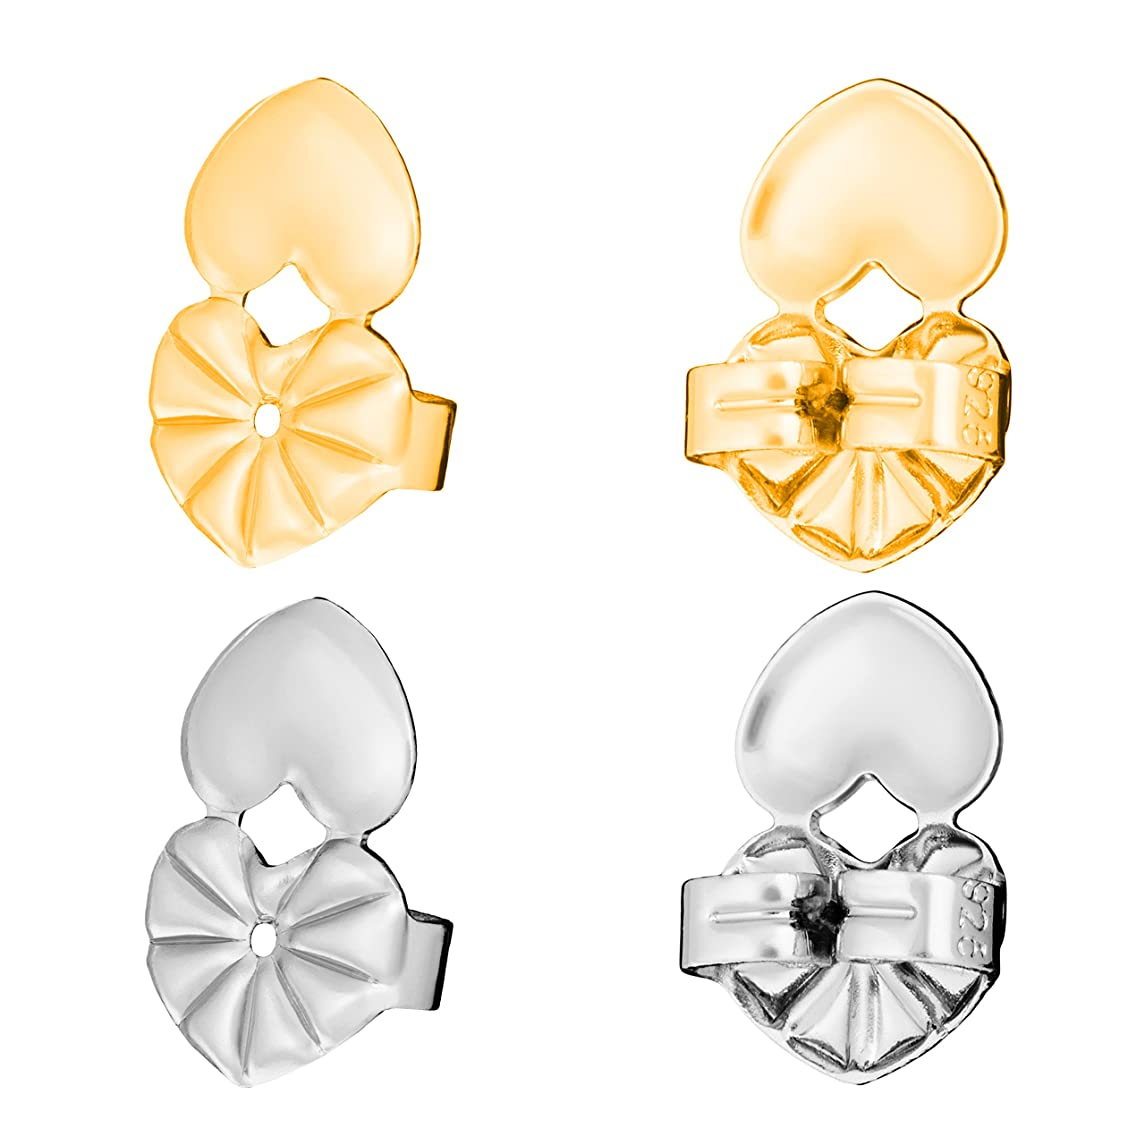 K&P Beauty Glamorous Earring Lifts to Instantly Lift Earring Backs - Securely Raise Stretched Ear Lobes with Earring Backs Lifters - 2 Pairs - Silver and Gold